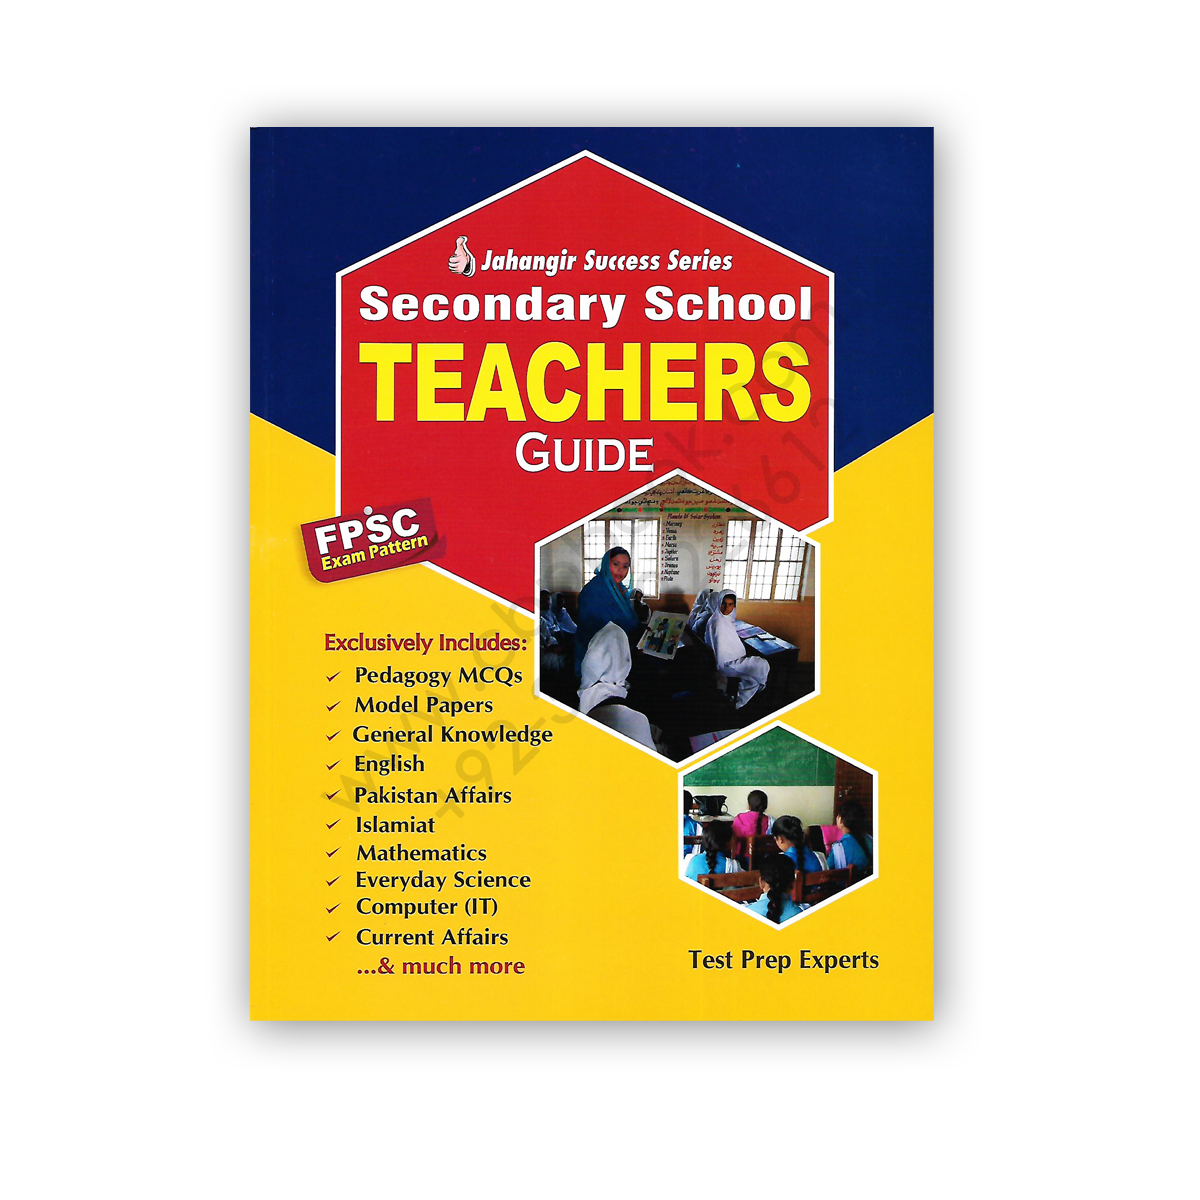 FPSC SST Secondary School Teacher Guide Test Prep Experts - Jahangir  Success Series